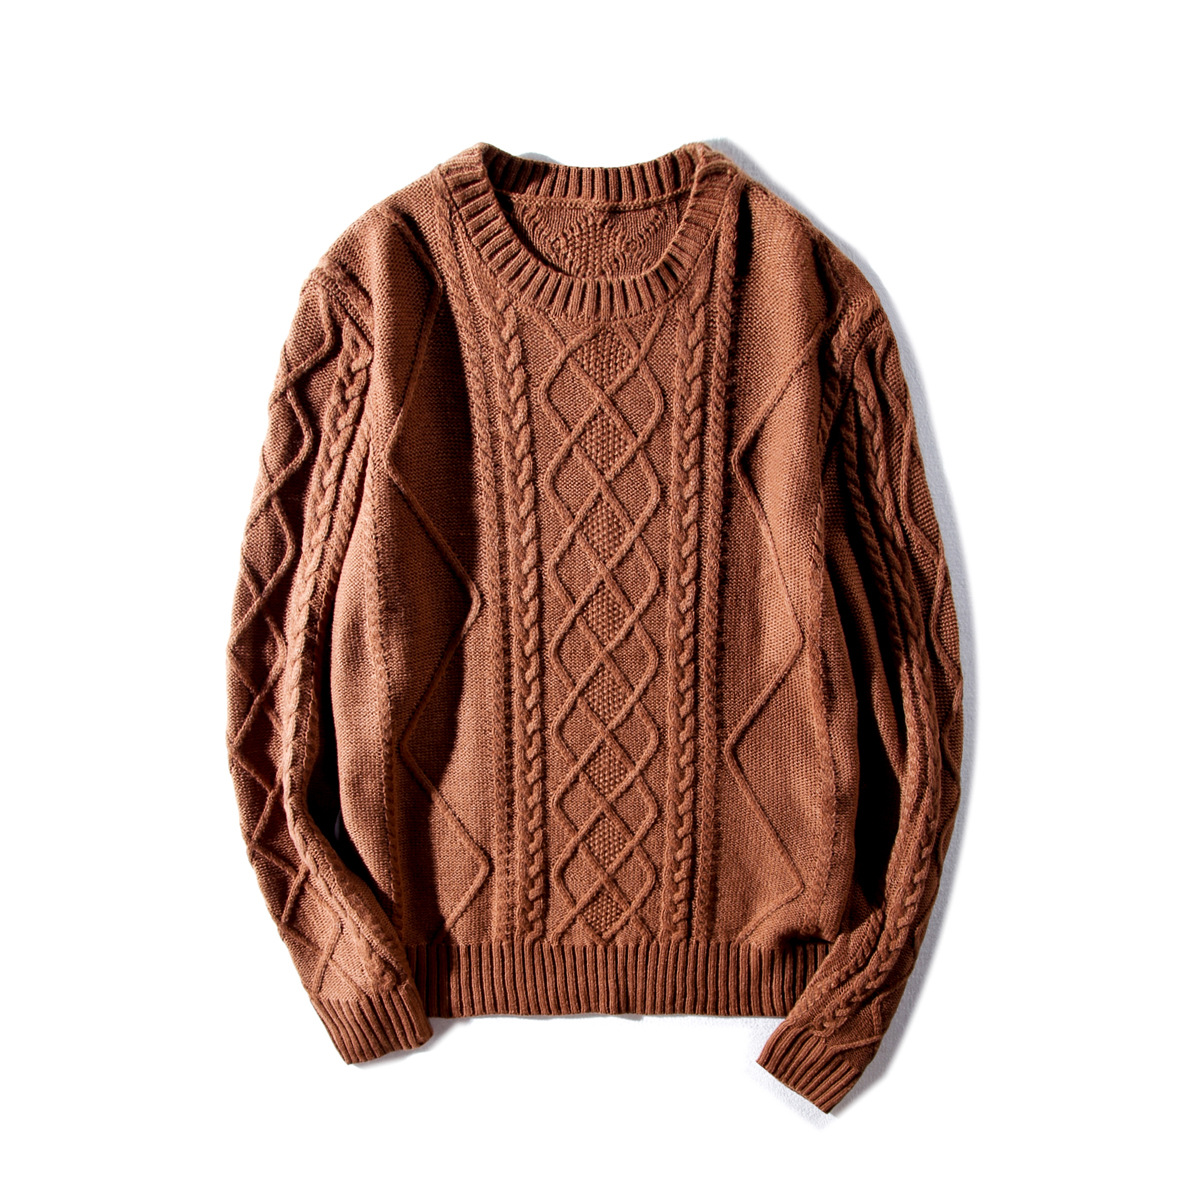 2017 New Male Head Japanese Twist Knit Sweater Male Tide Men's Sweater